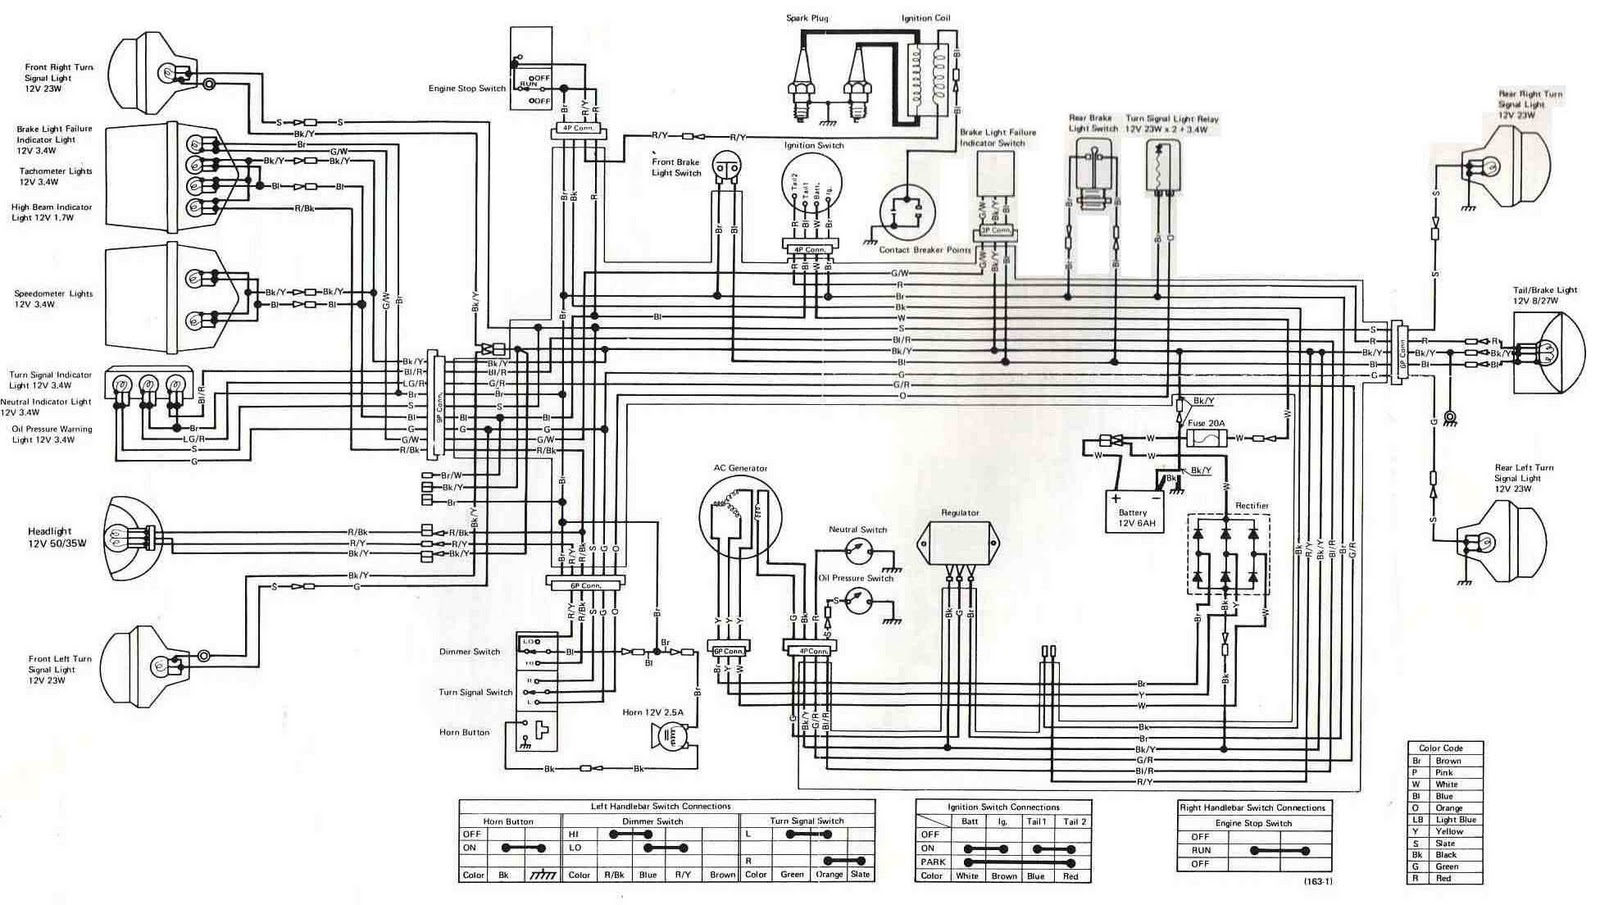 Kawasaki Kz400 1975 Electrical Wiring Diagram